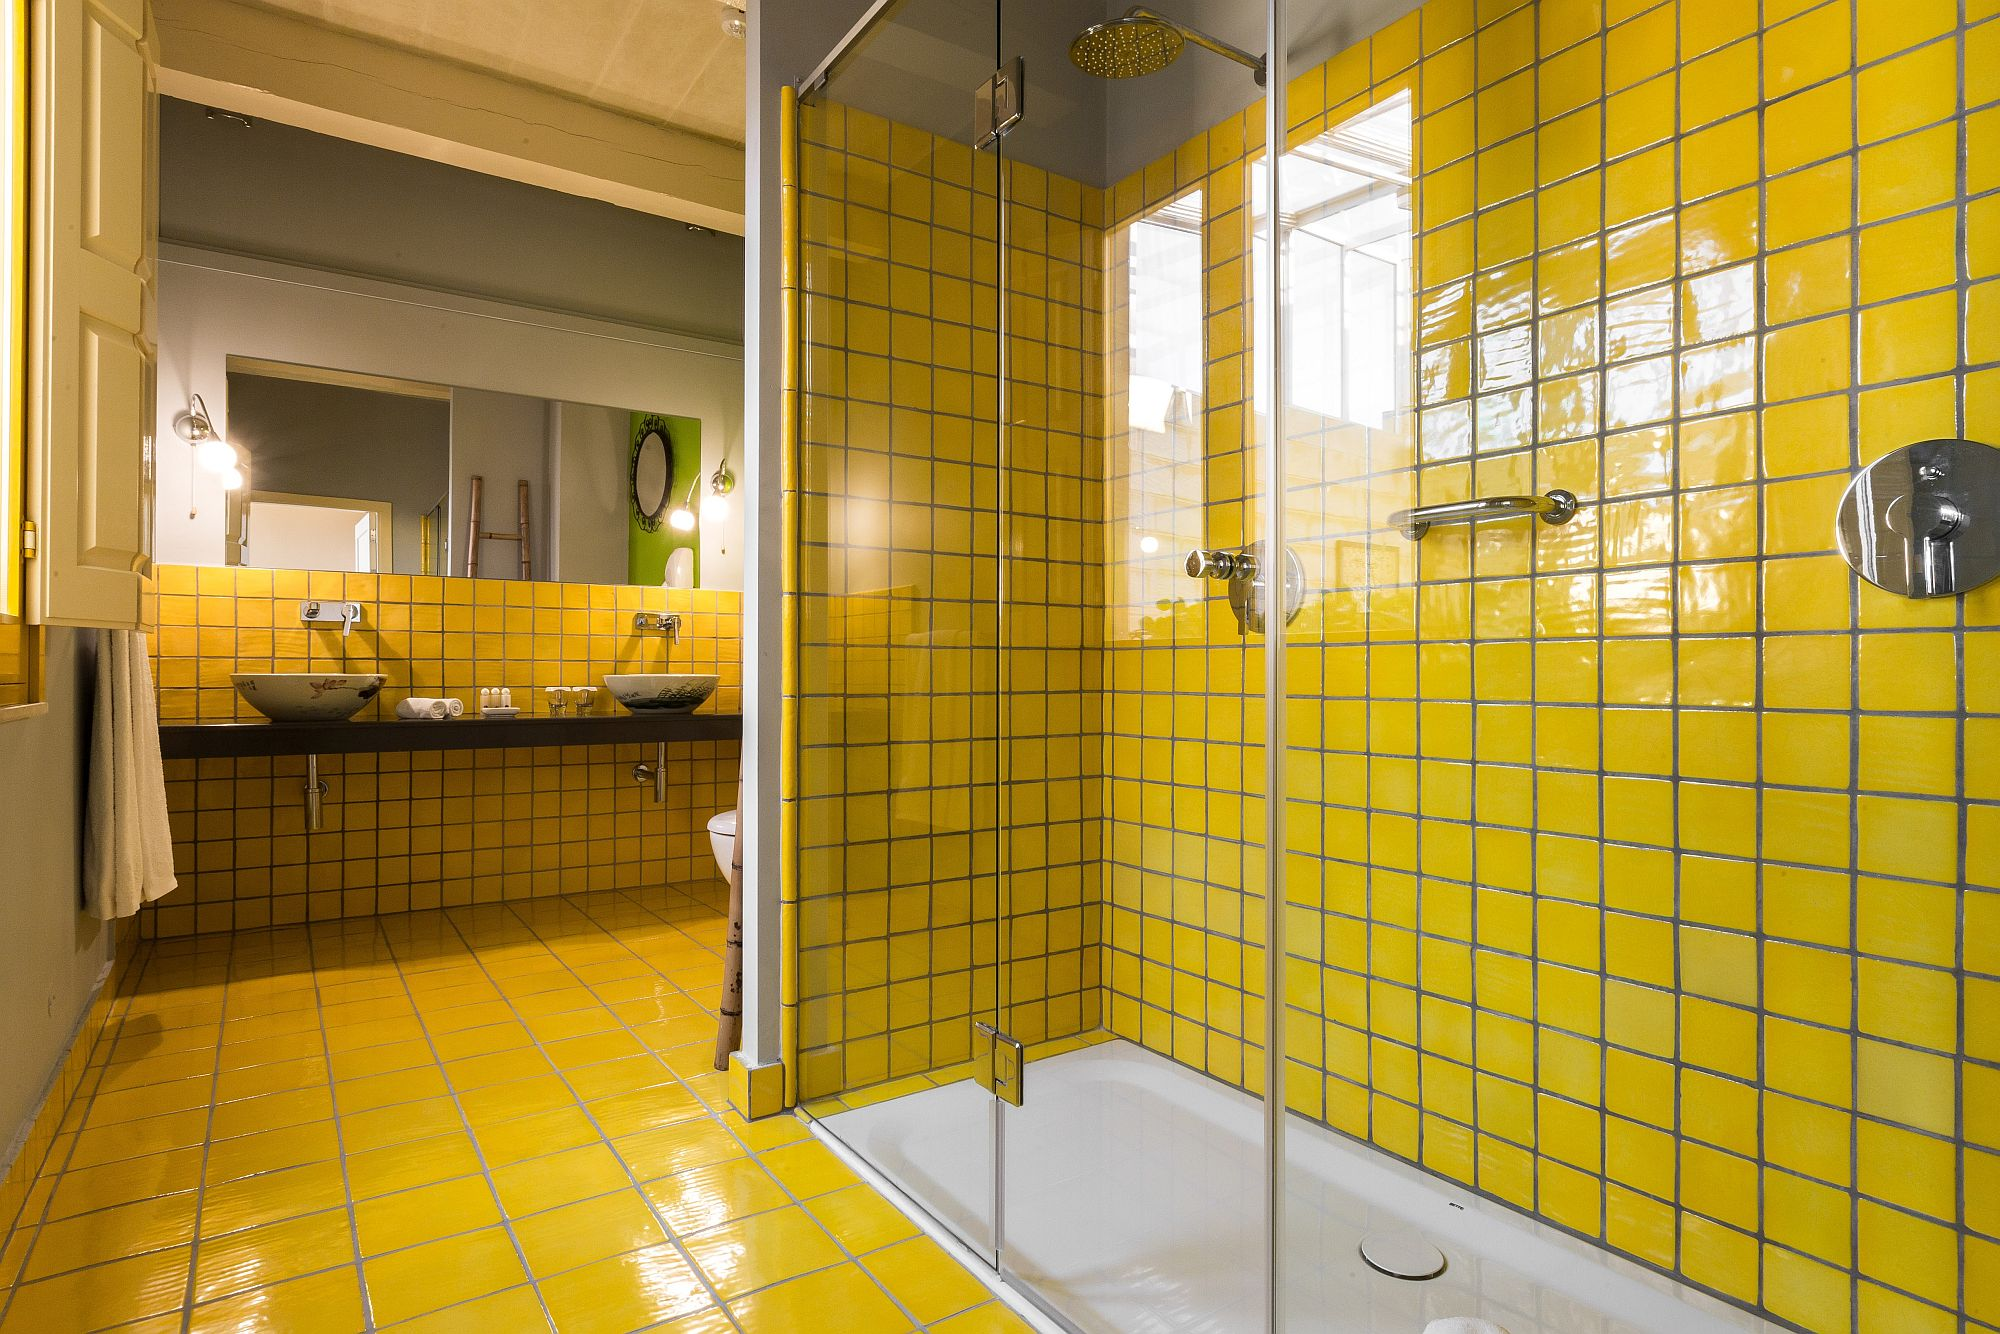 Fabulous bathroom draped in yellow tiles and filled with natural light